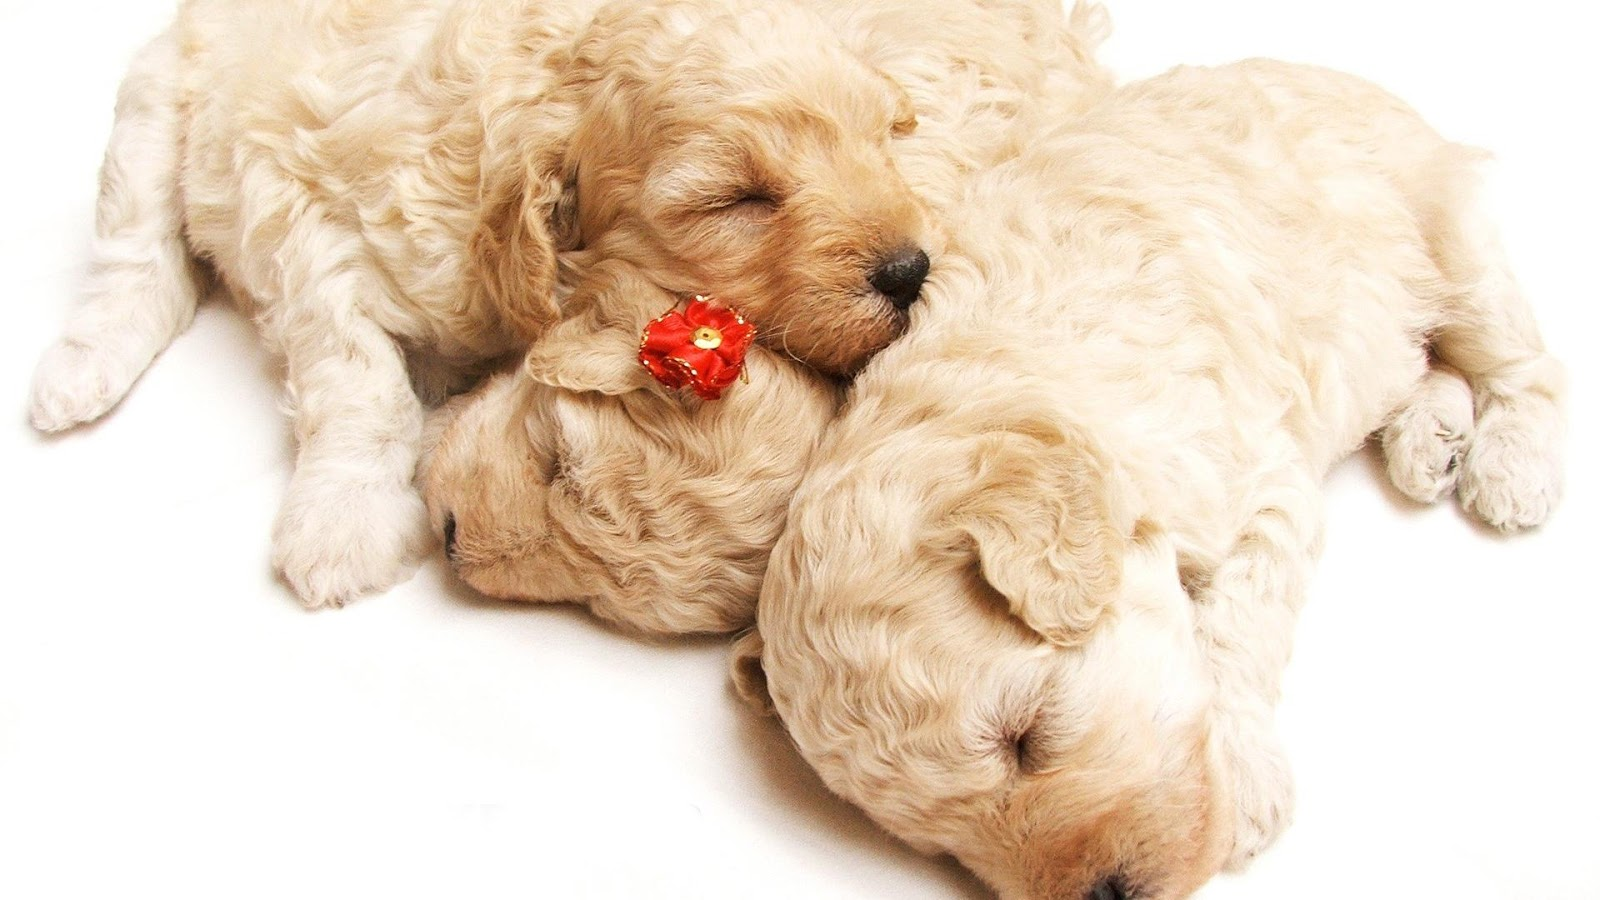 hd puppy wallpapers hd puppy wallpapers hd puppy wallpapers hd puppy